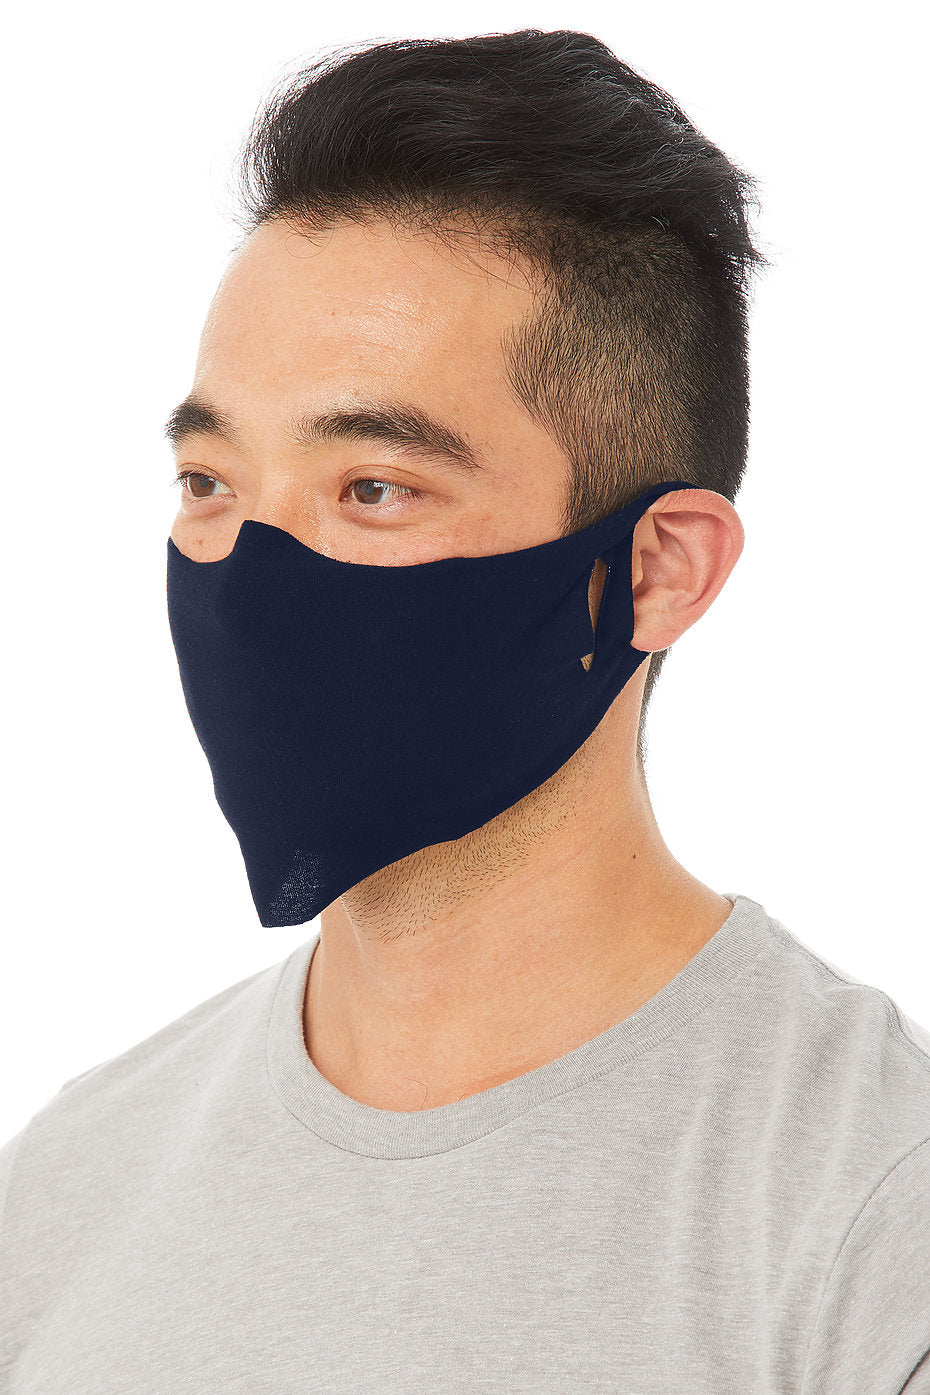 Lightweight Fabric Facecover Mask 4 Pack in Navy Blue